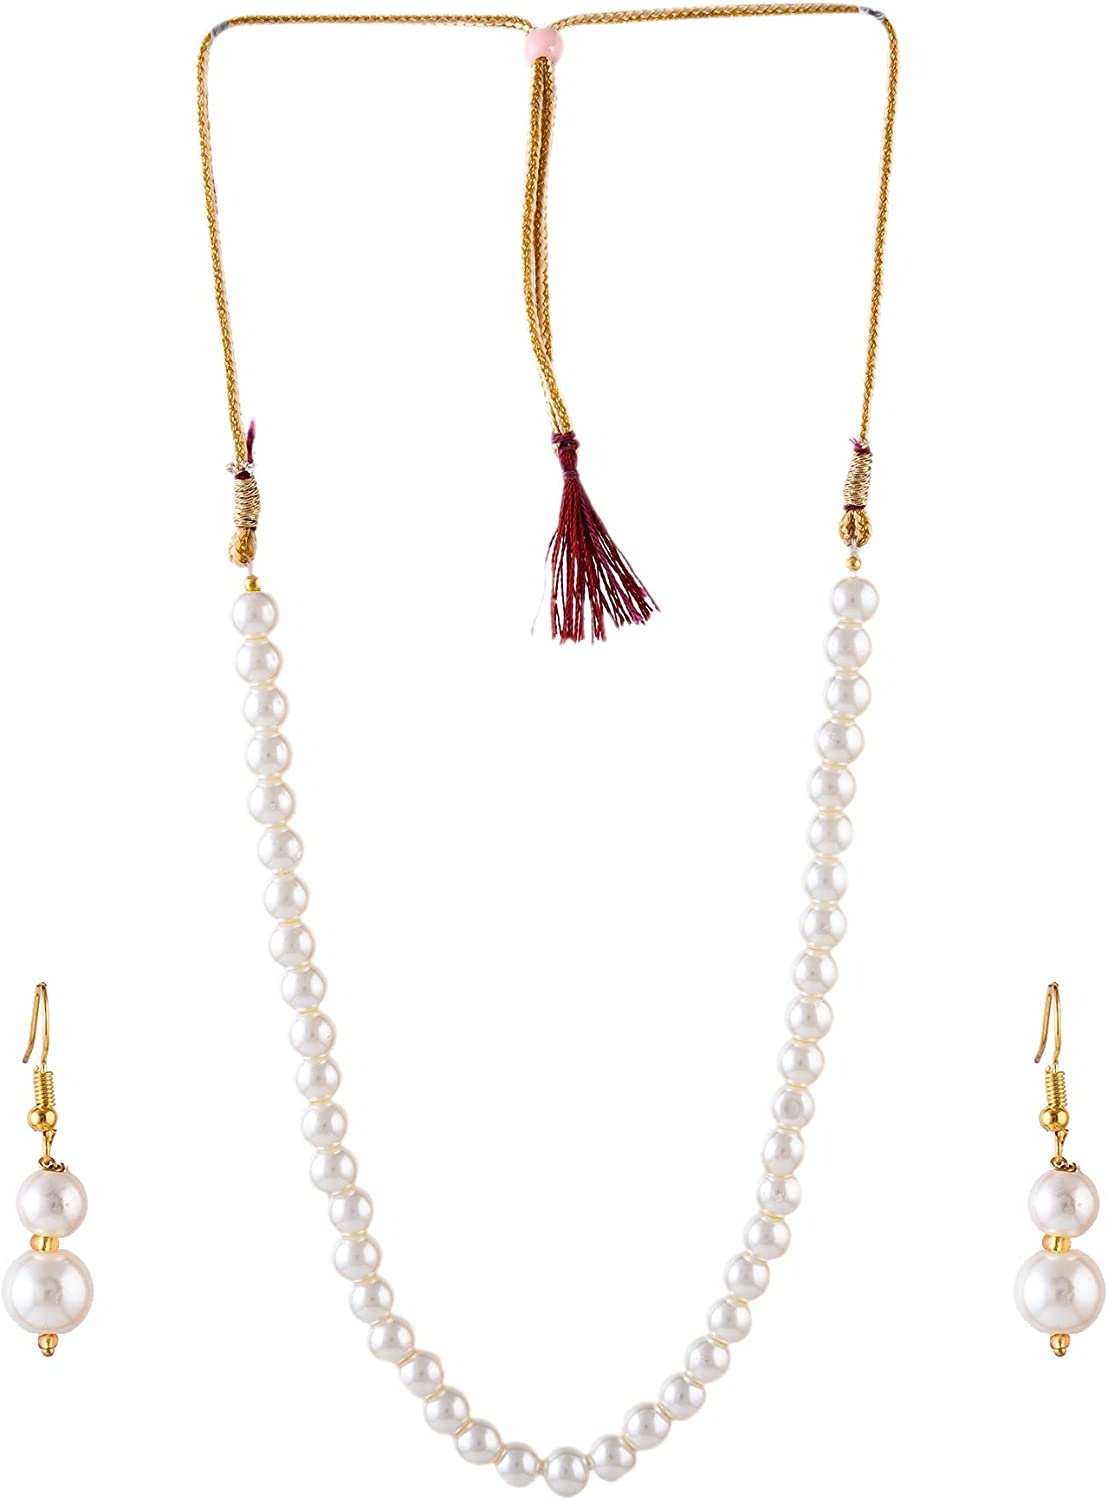 Saissa White Imitation Pearls Single Line Indian Necklace Earrings Jewelry Set for Girls and Women